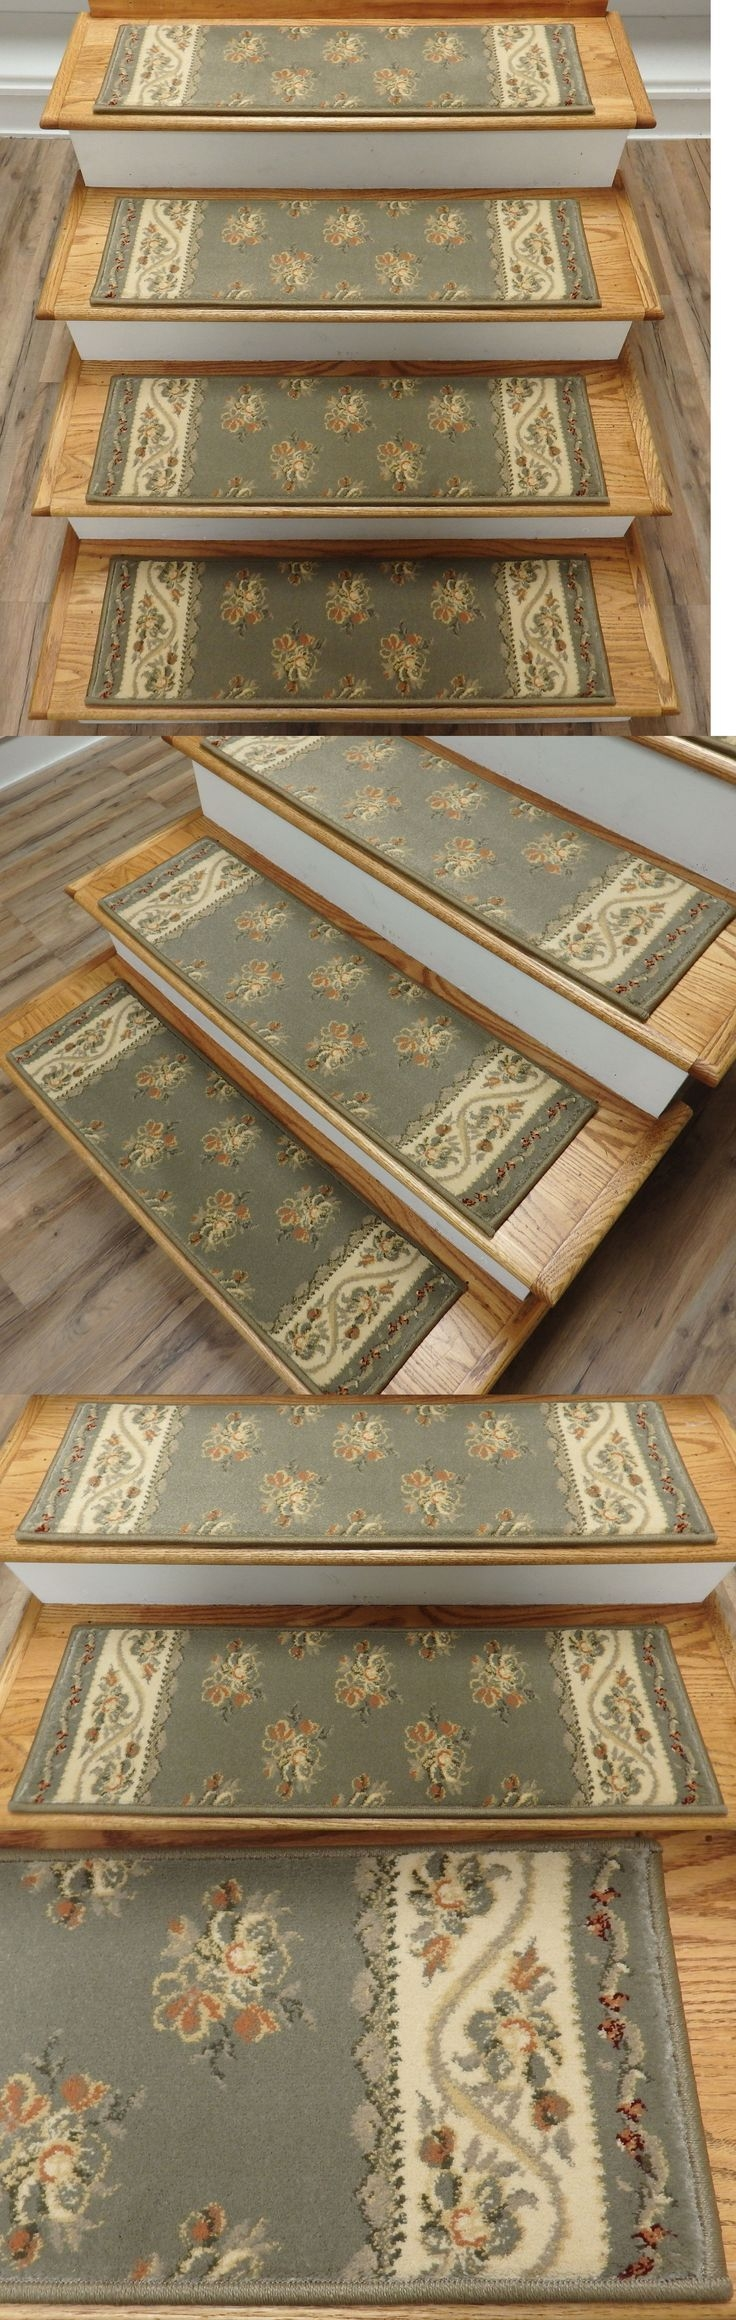 Top 25 Best Carpet Stair Treads Ideas On Pinterest Wood Stair Pertaining To 8 Inch Stair Tread Rugs (#20 of 20)